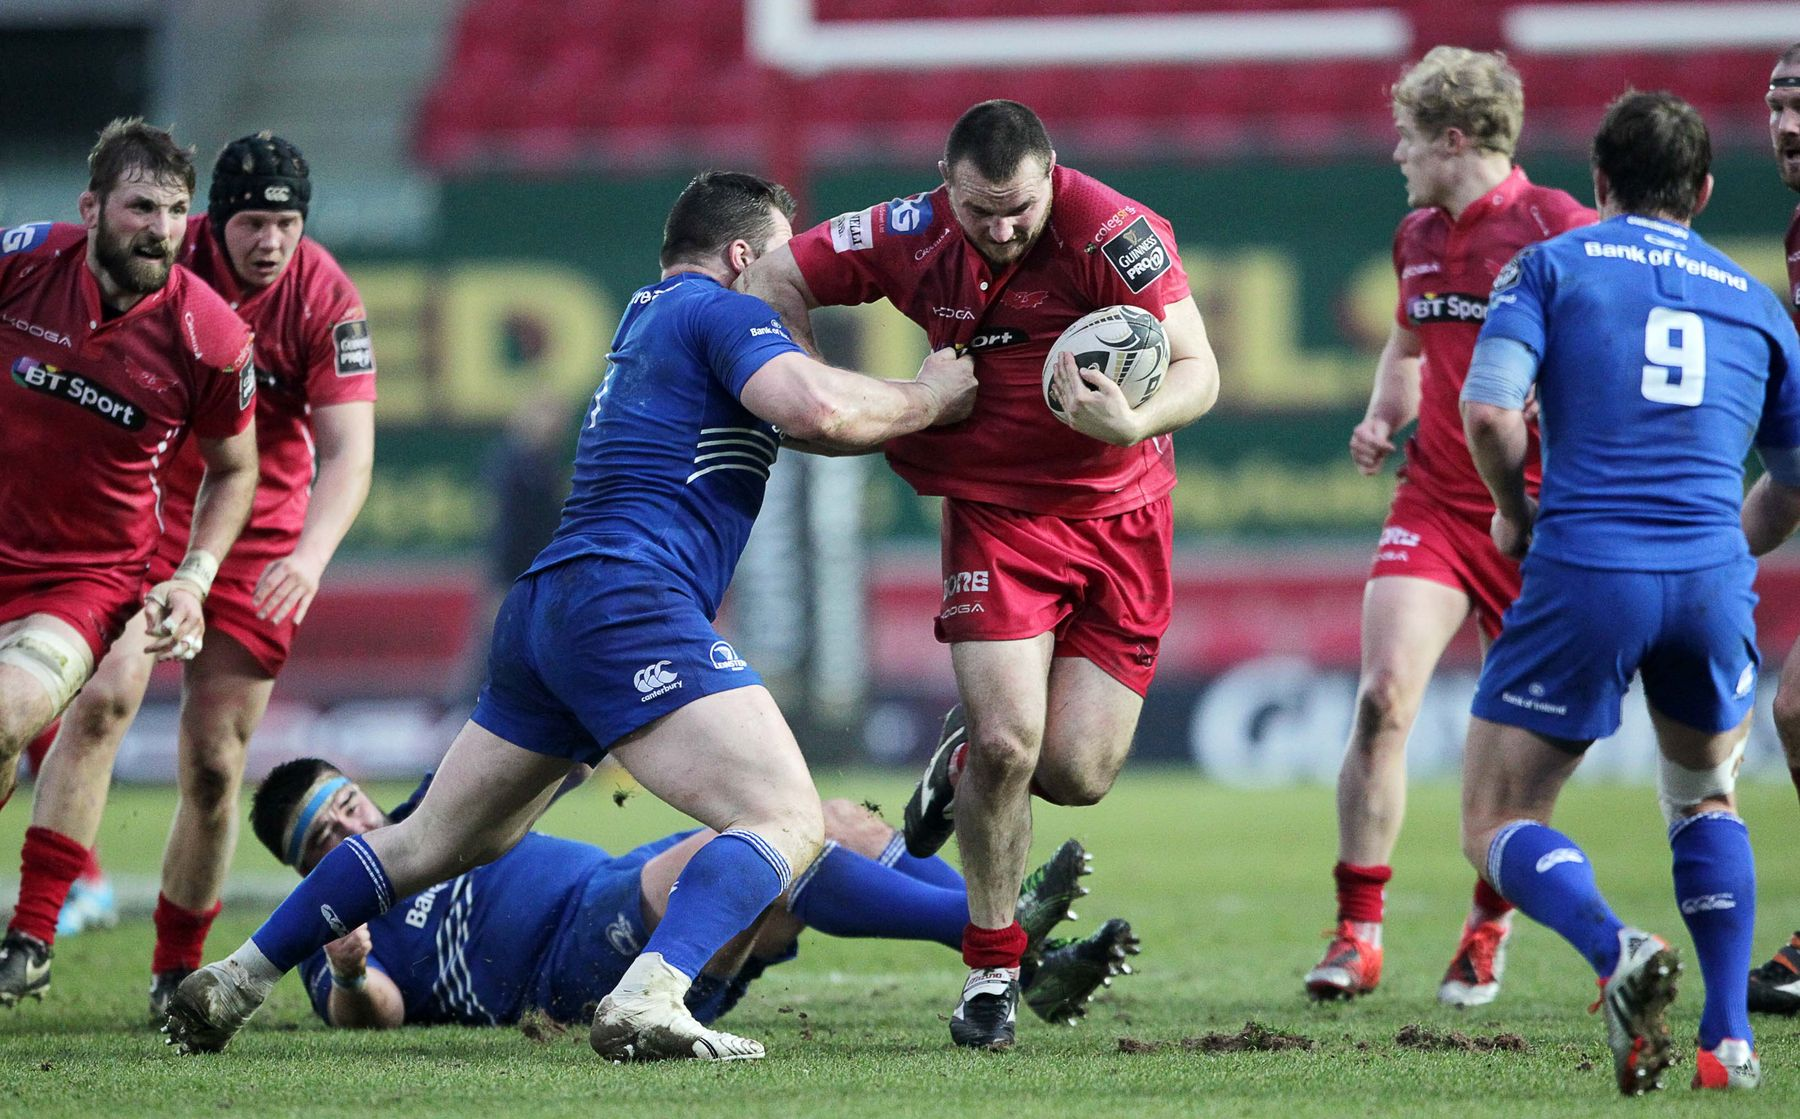 Owens targeting perfect finish